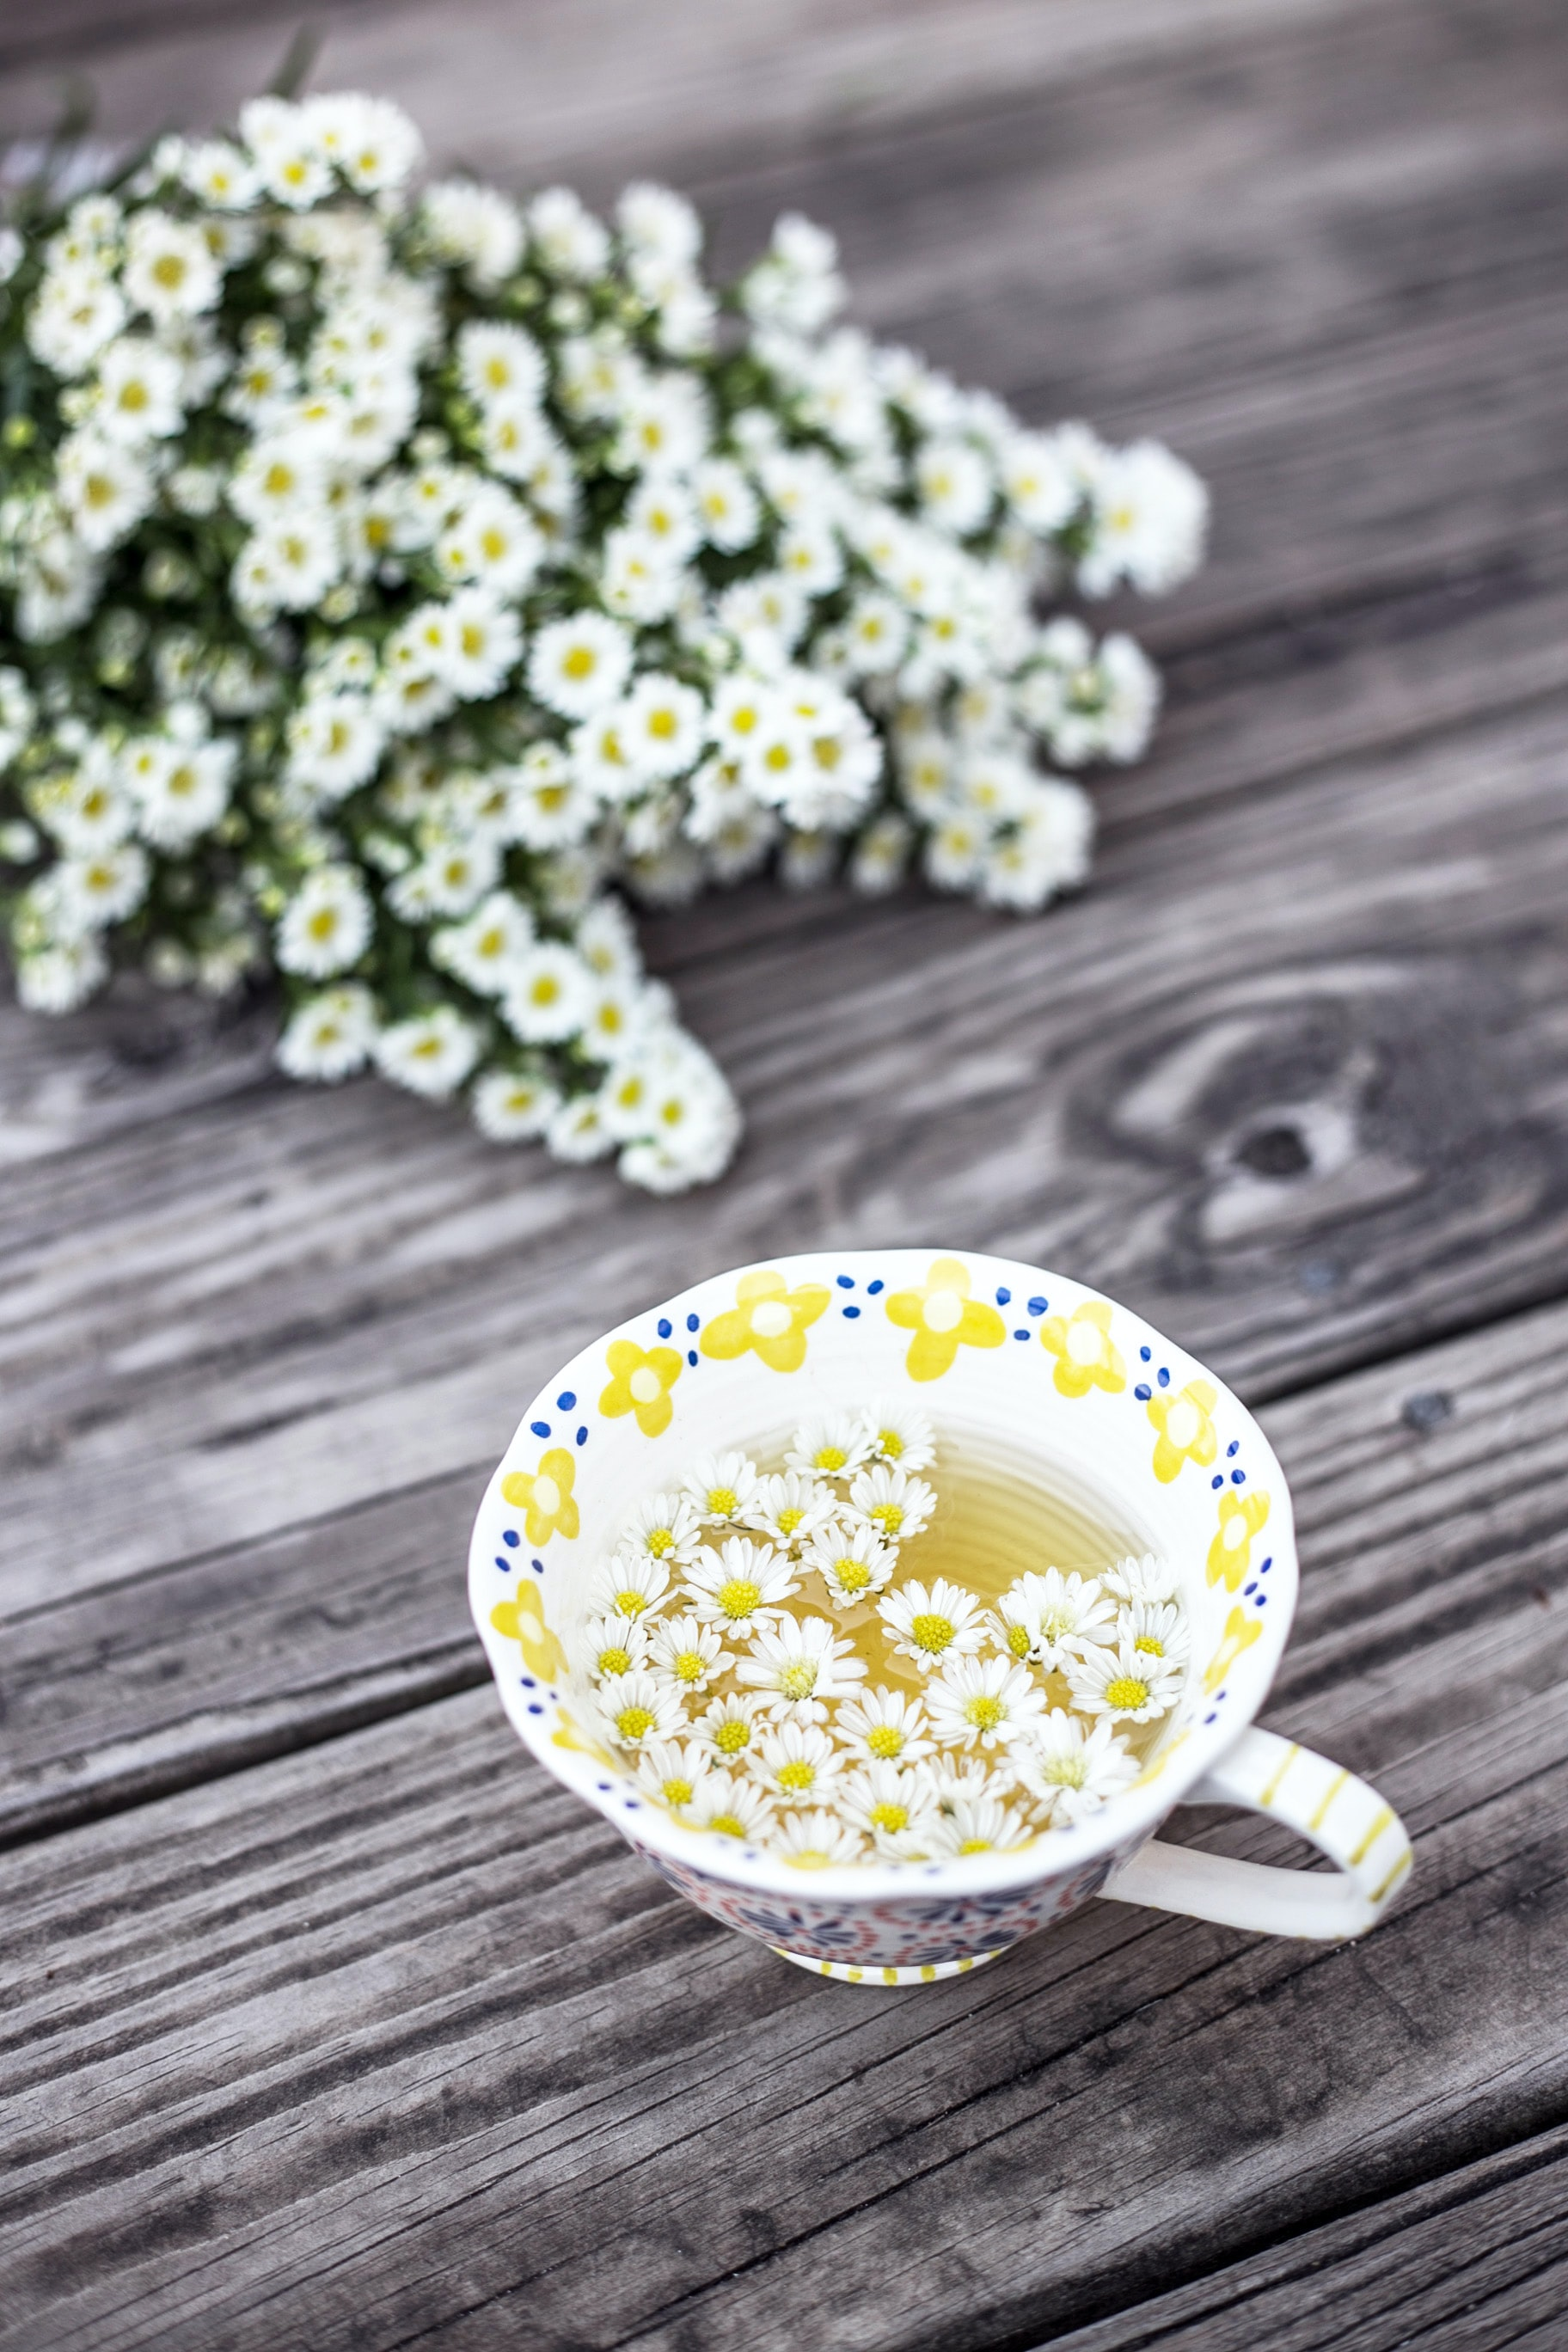 white and yellow cup with flowers on table